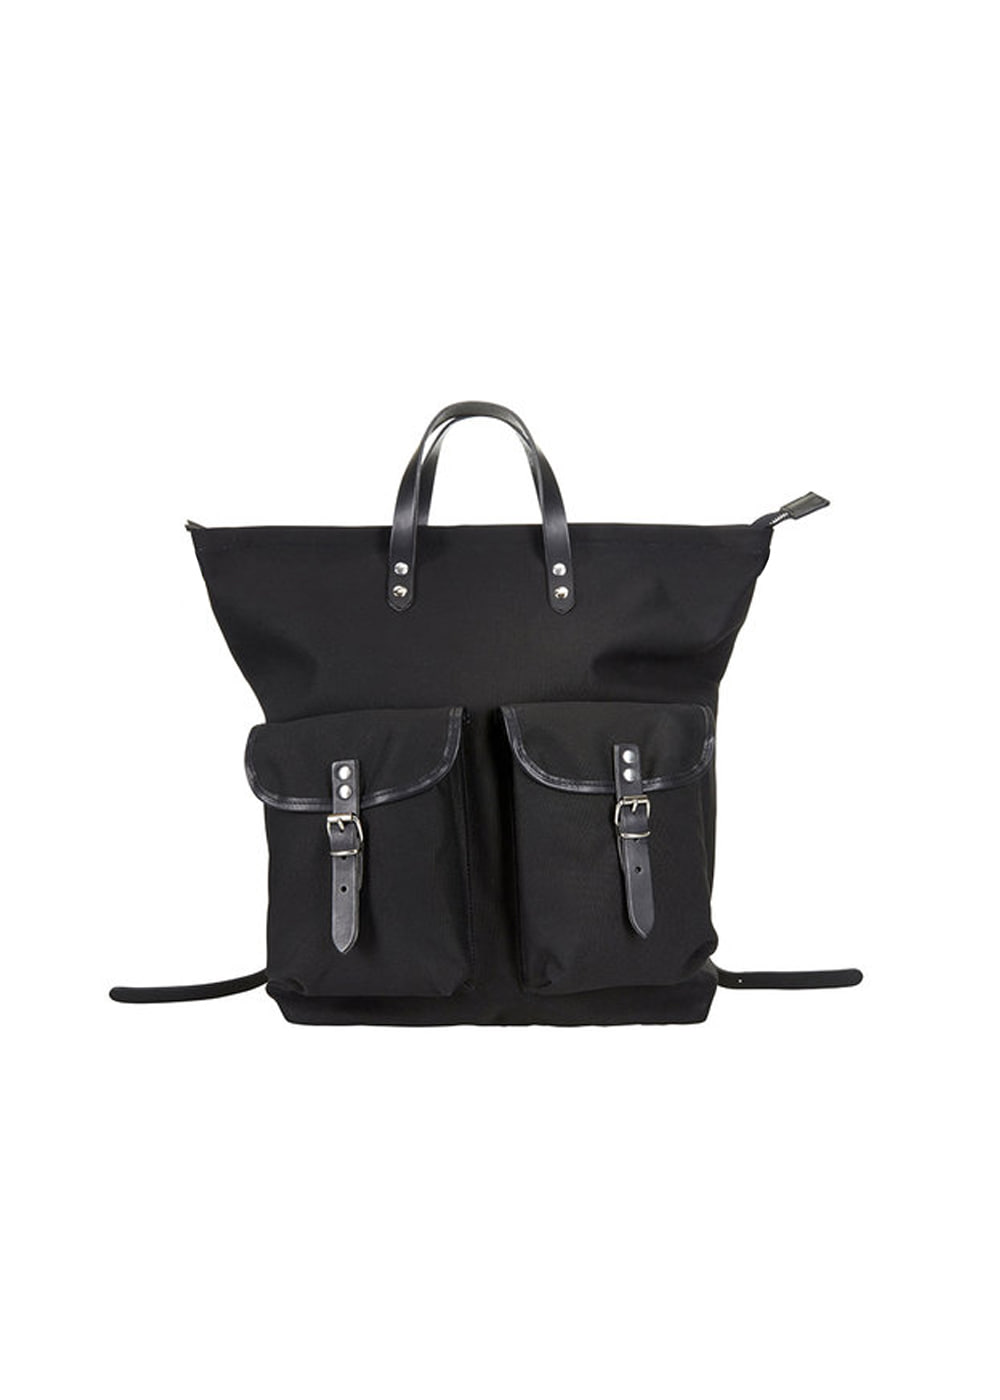 MEDIUM CANVAS RUCKSACK - black